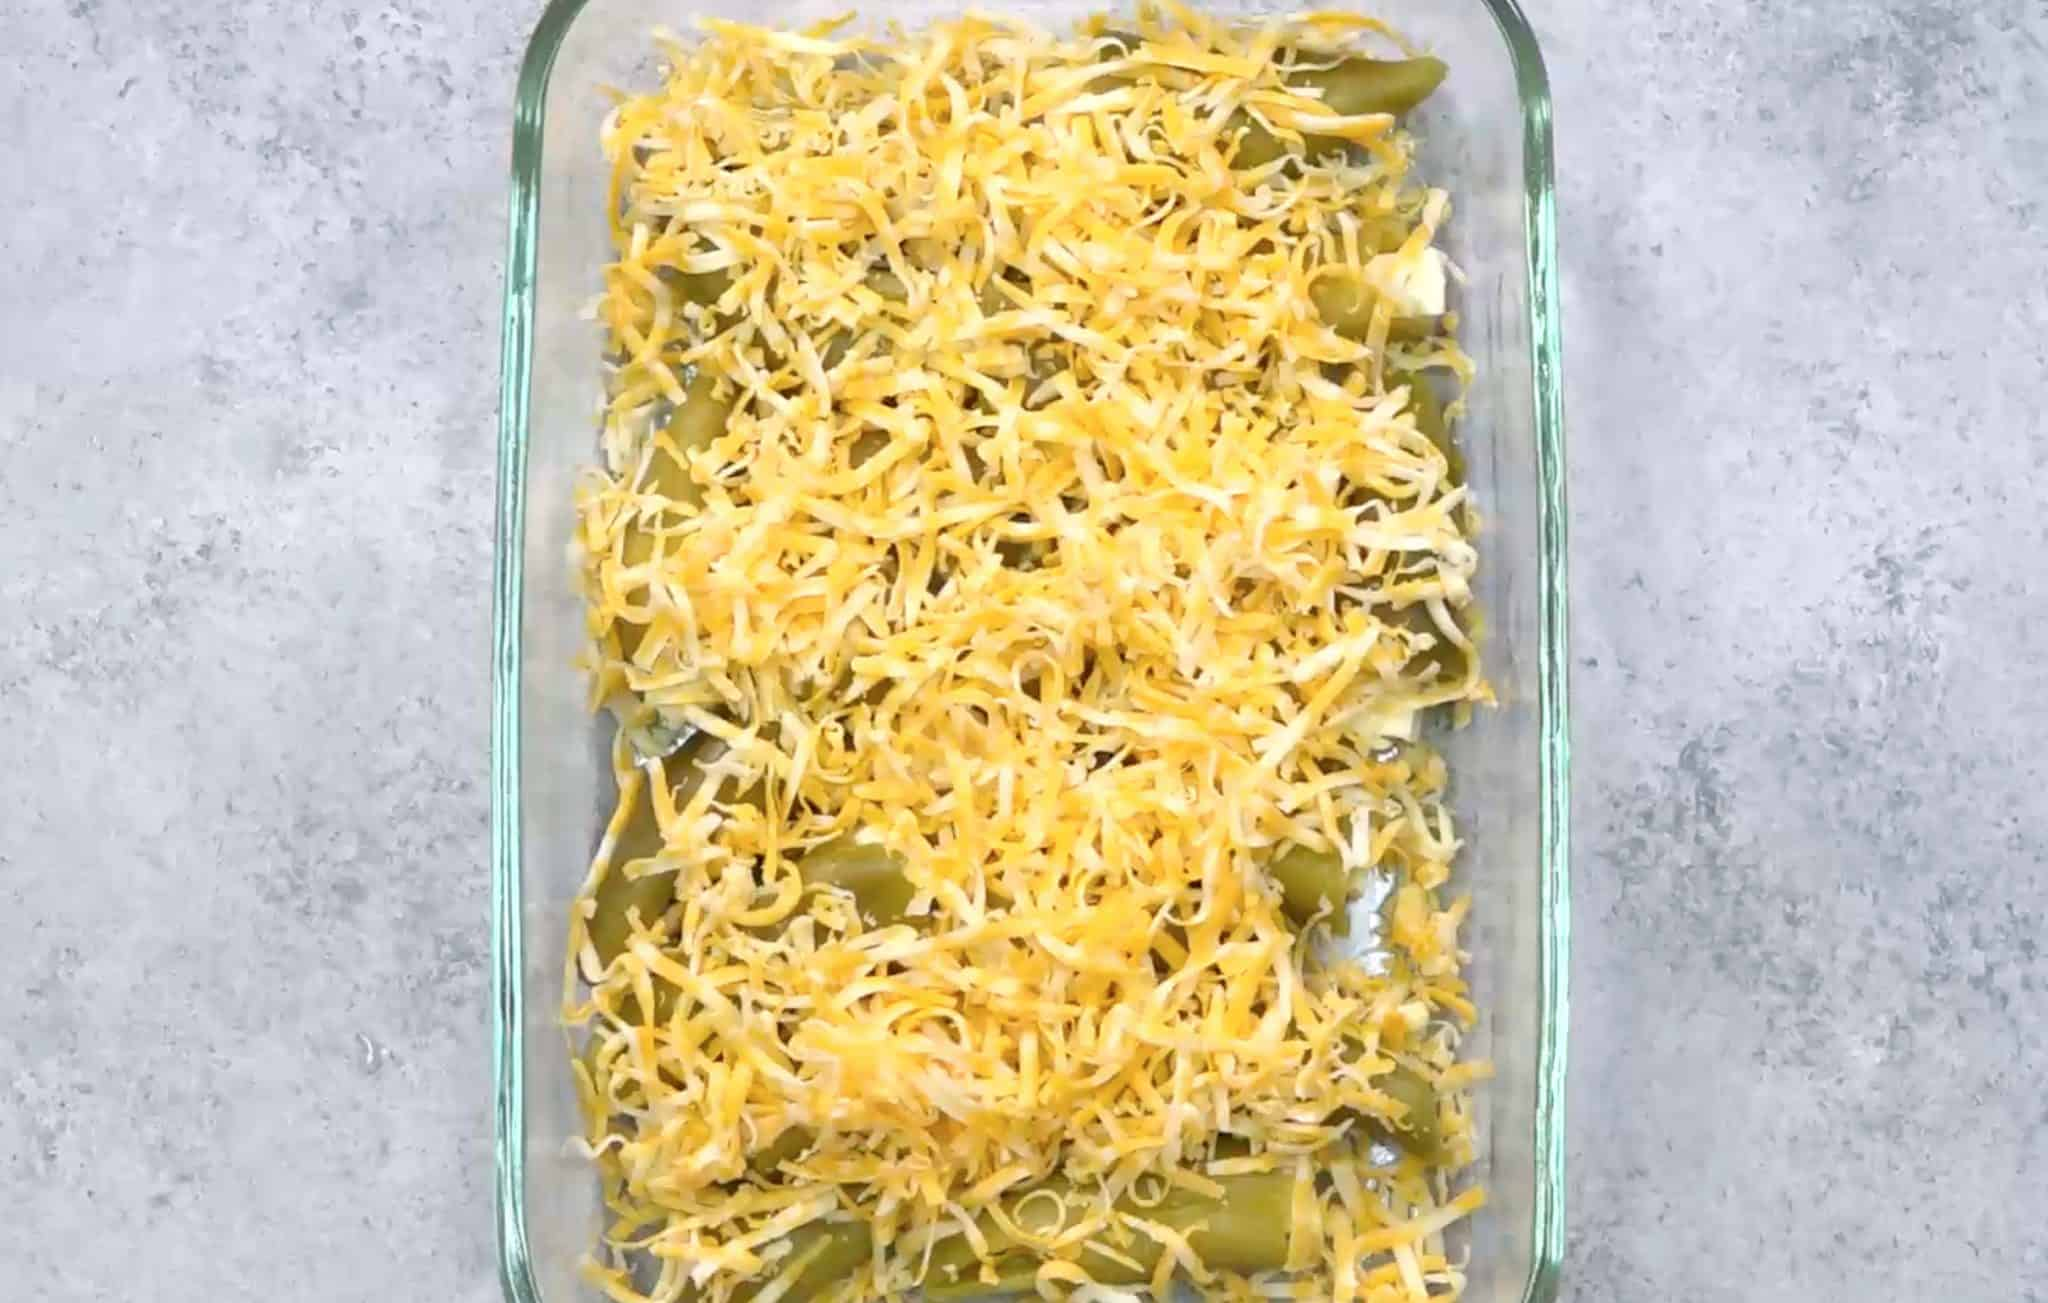 Chile Relleno Casserole is a family favorite breakfast casserole with eggs, two types of cheese and mild green chiles. The perfect breakfast recipe for feeding a crowd! #chilerelleno #breakfastcasserole www.savoryexperiments.com